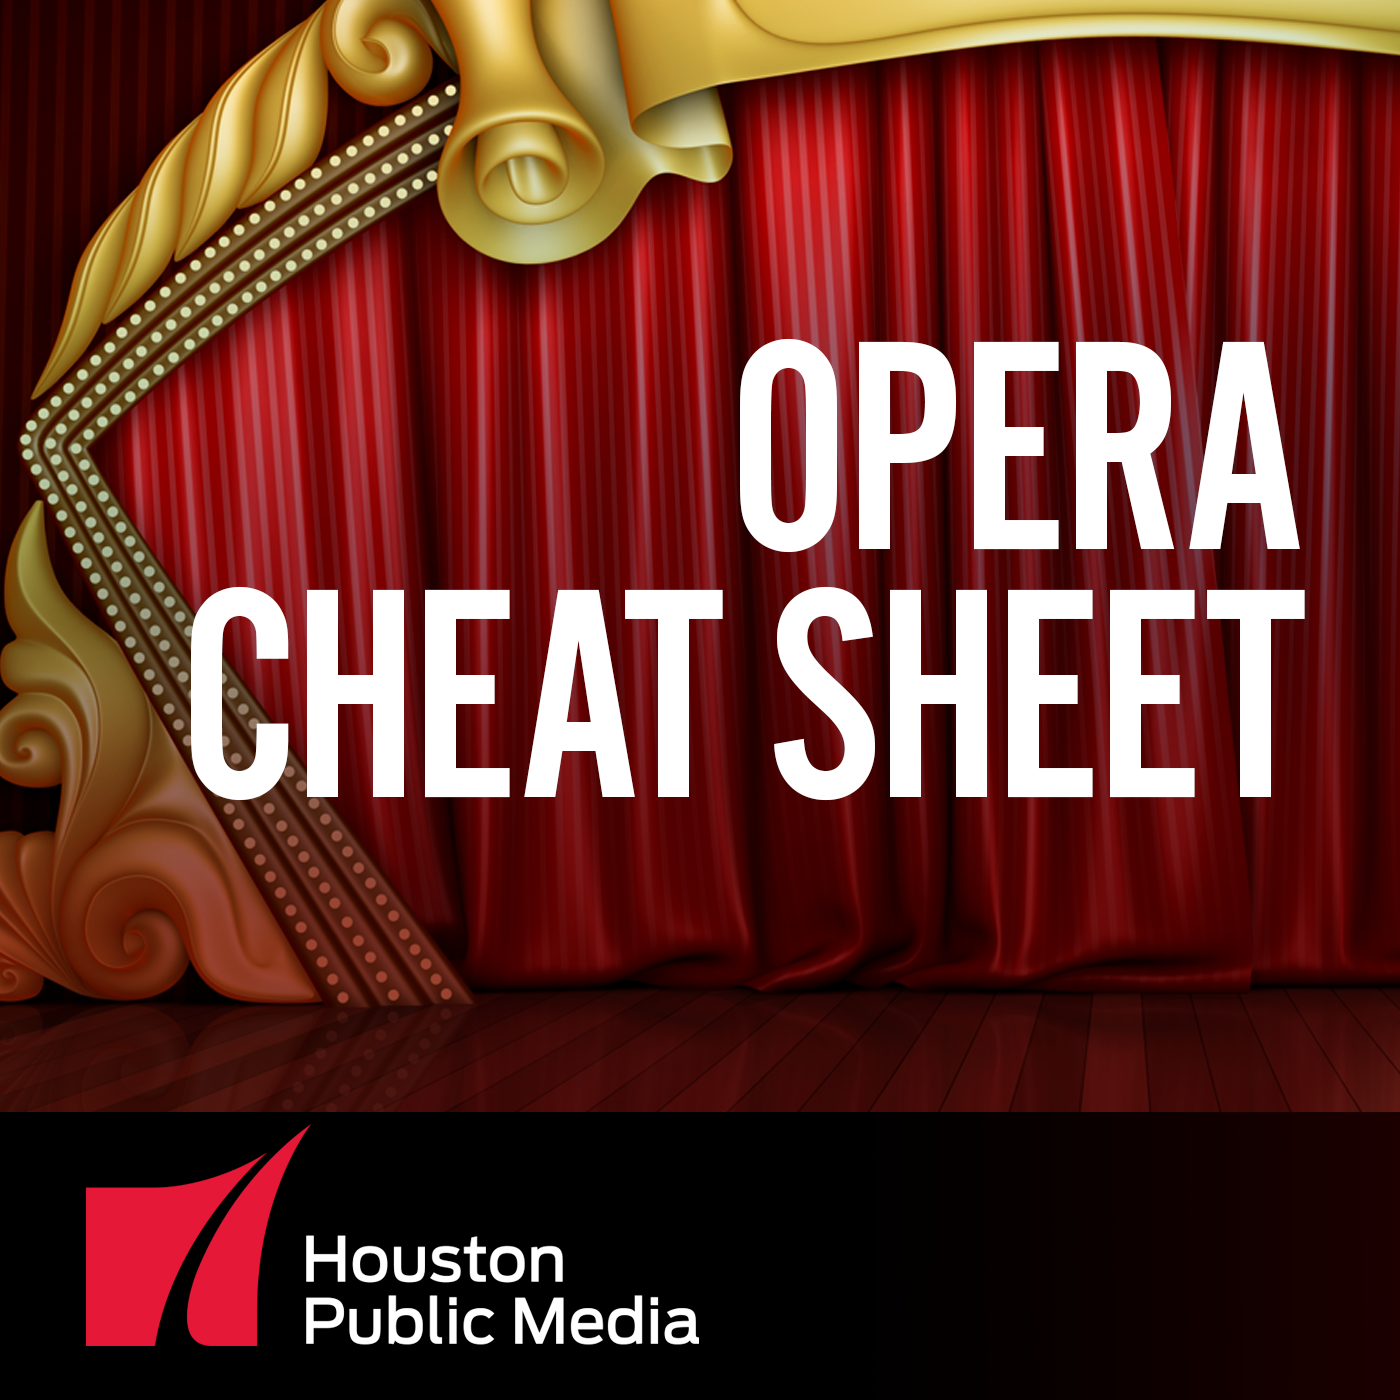 Opera Cheat Sheet | Houston Public Media